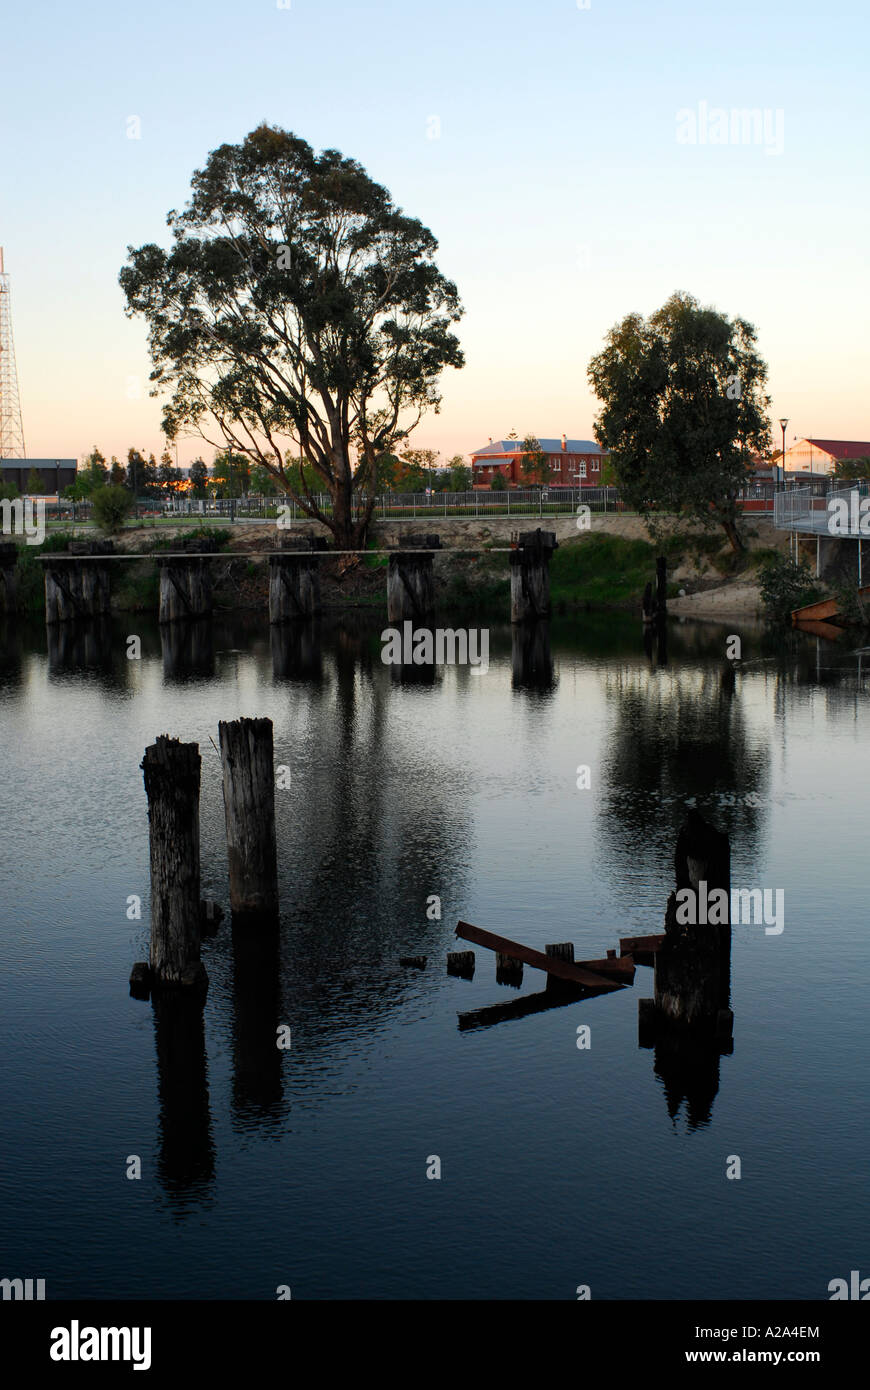 Partially Submerged Pylons Abandoned Water Filled Coal Pit Derelict Stock Photo Alamy